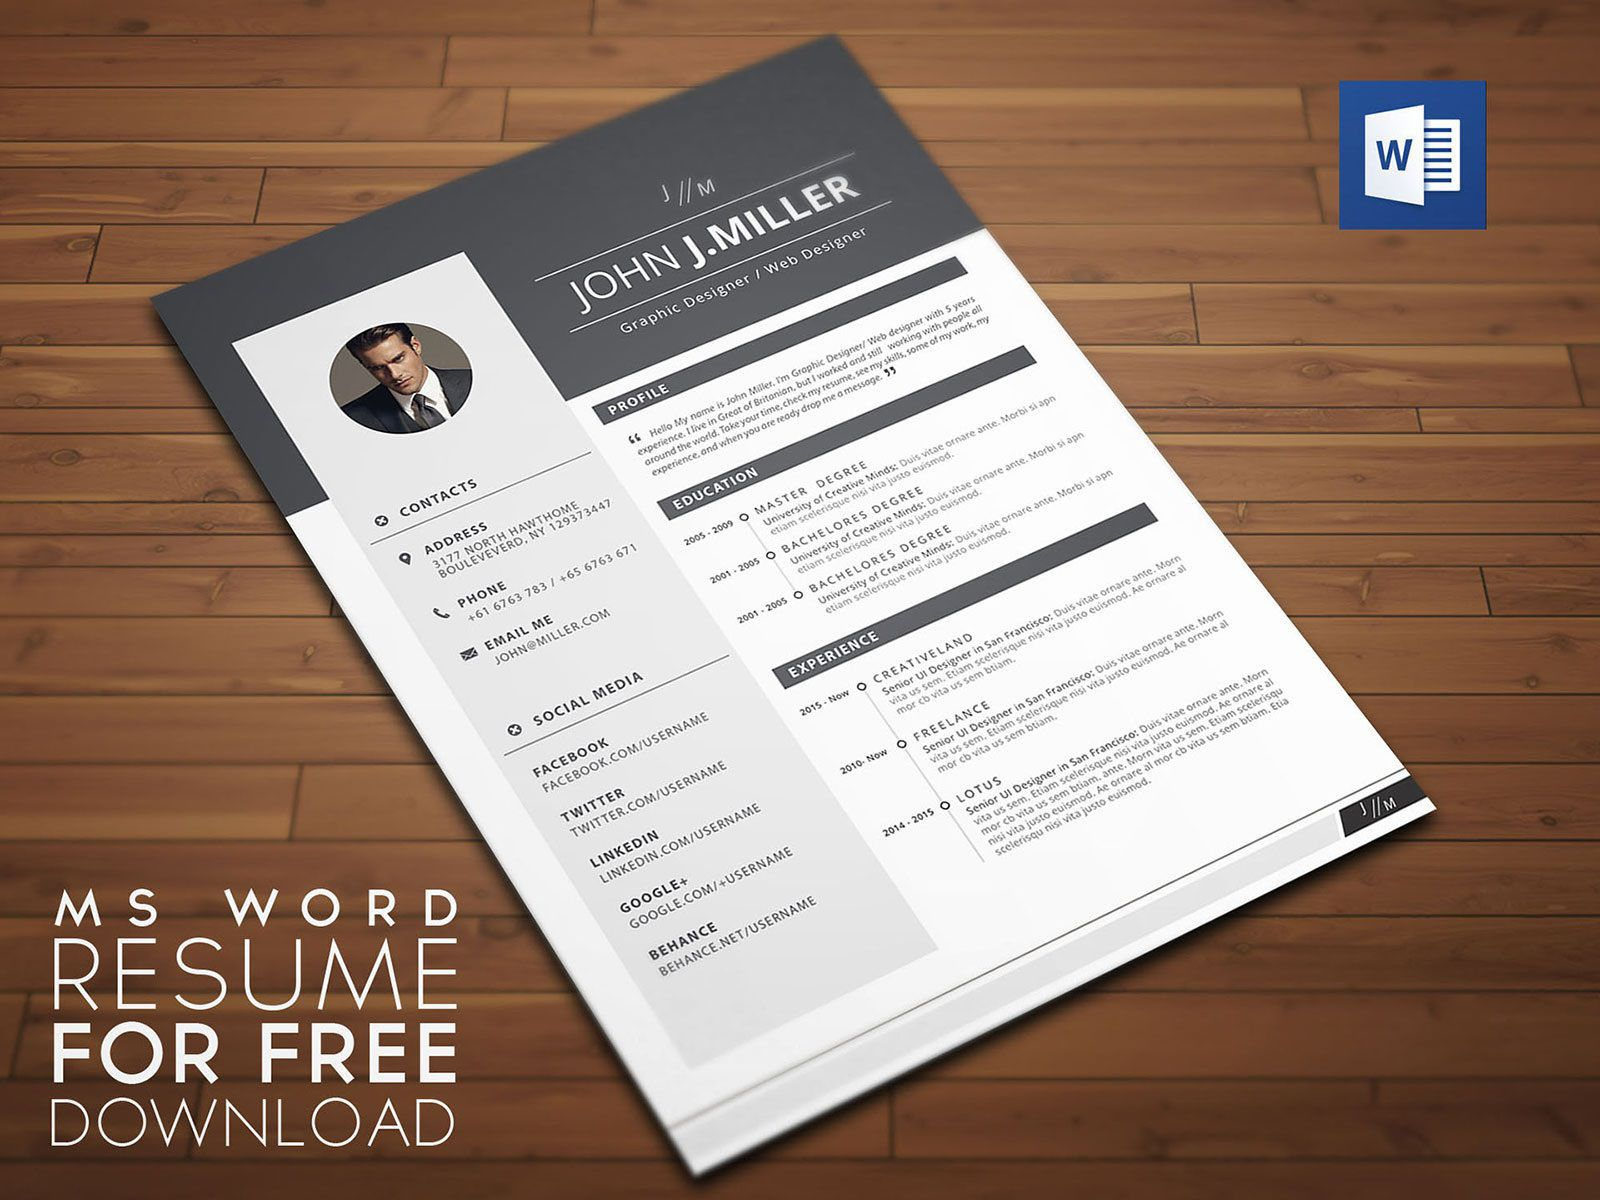 006 Imposing Professional Resume Template 2018 Free Download Idea Full